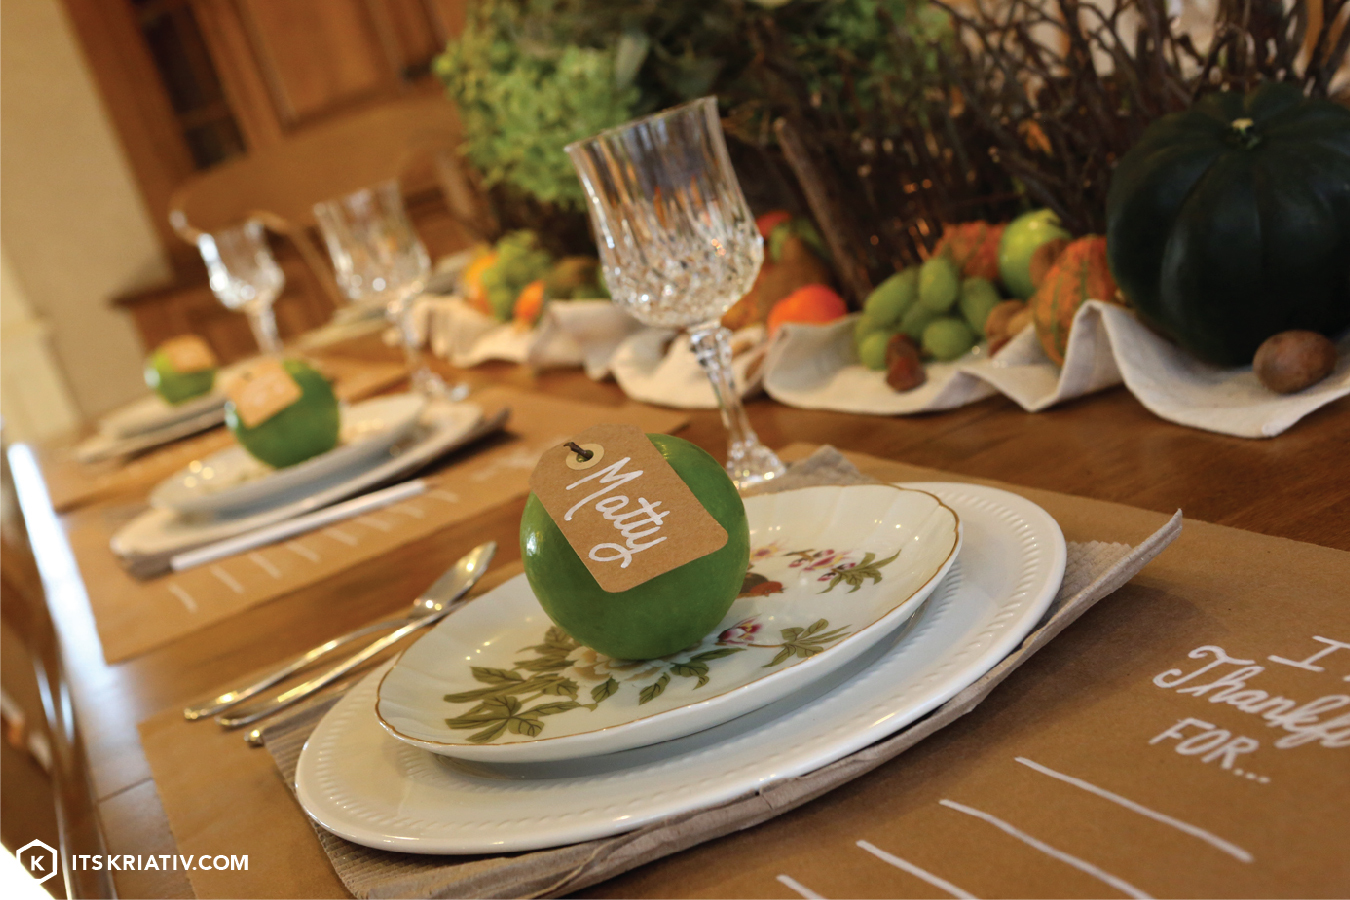 13_Nov_Decor-DIY-Thanksgiving-Place-Setting-06.jpg